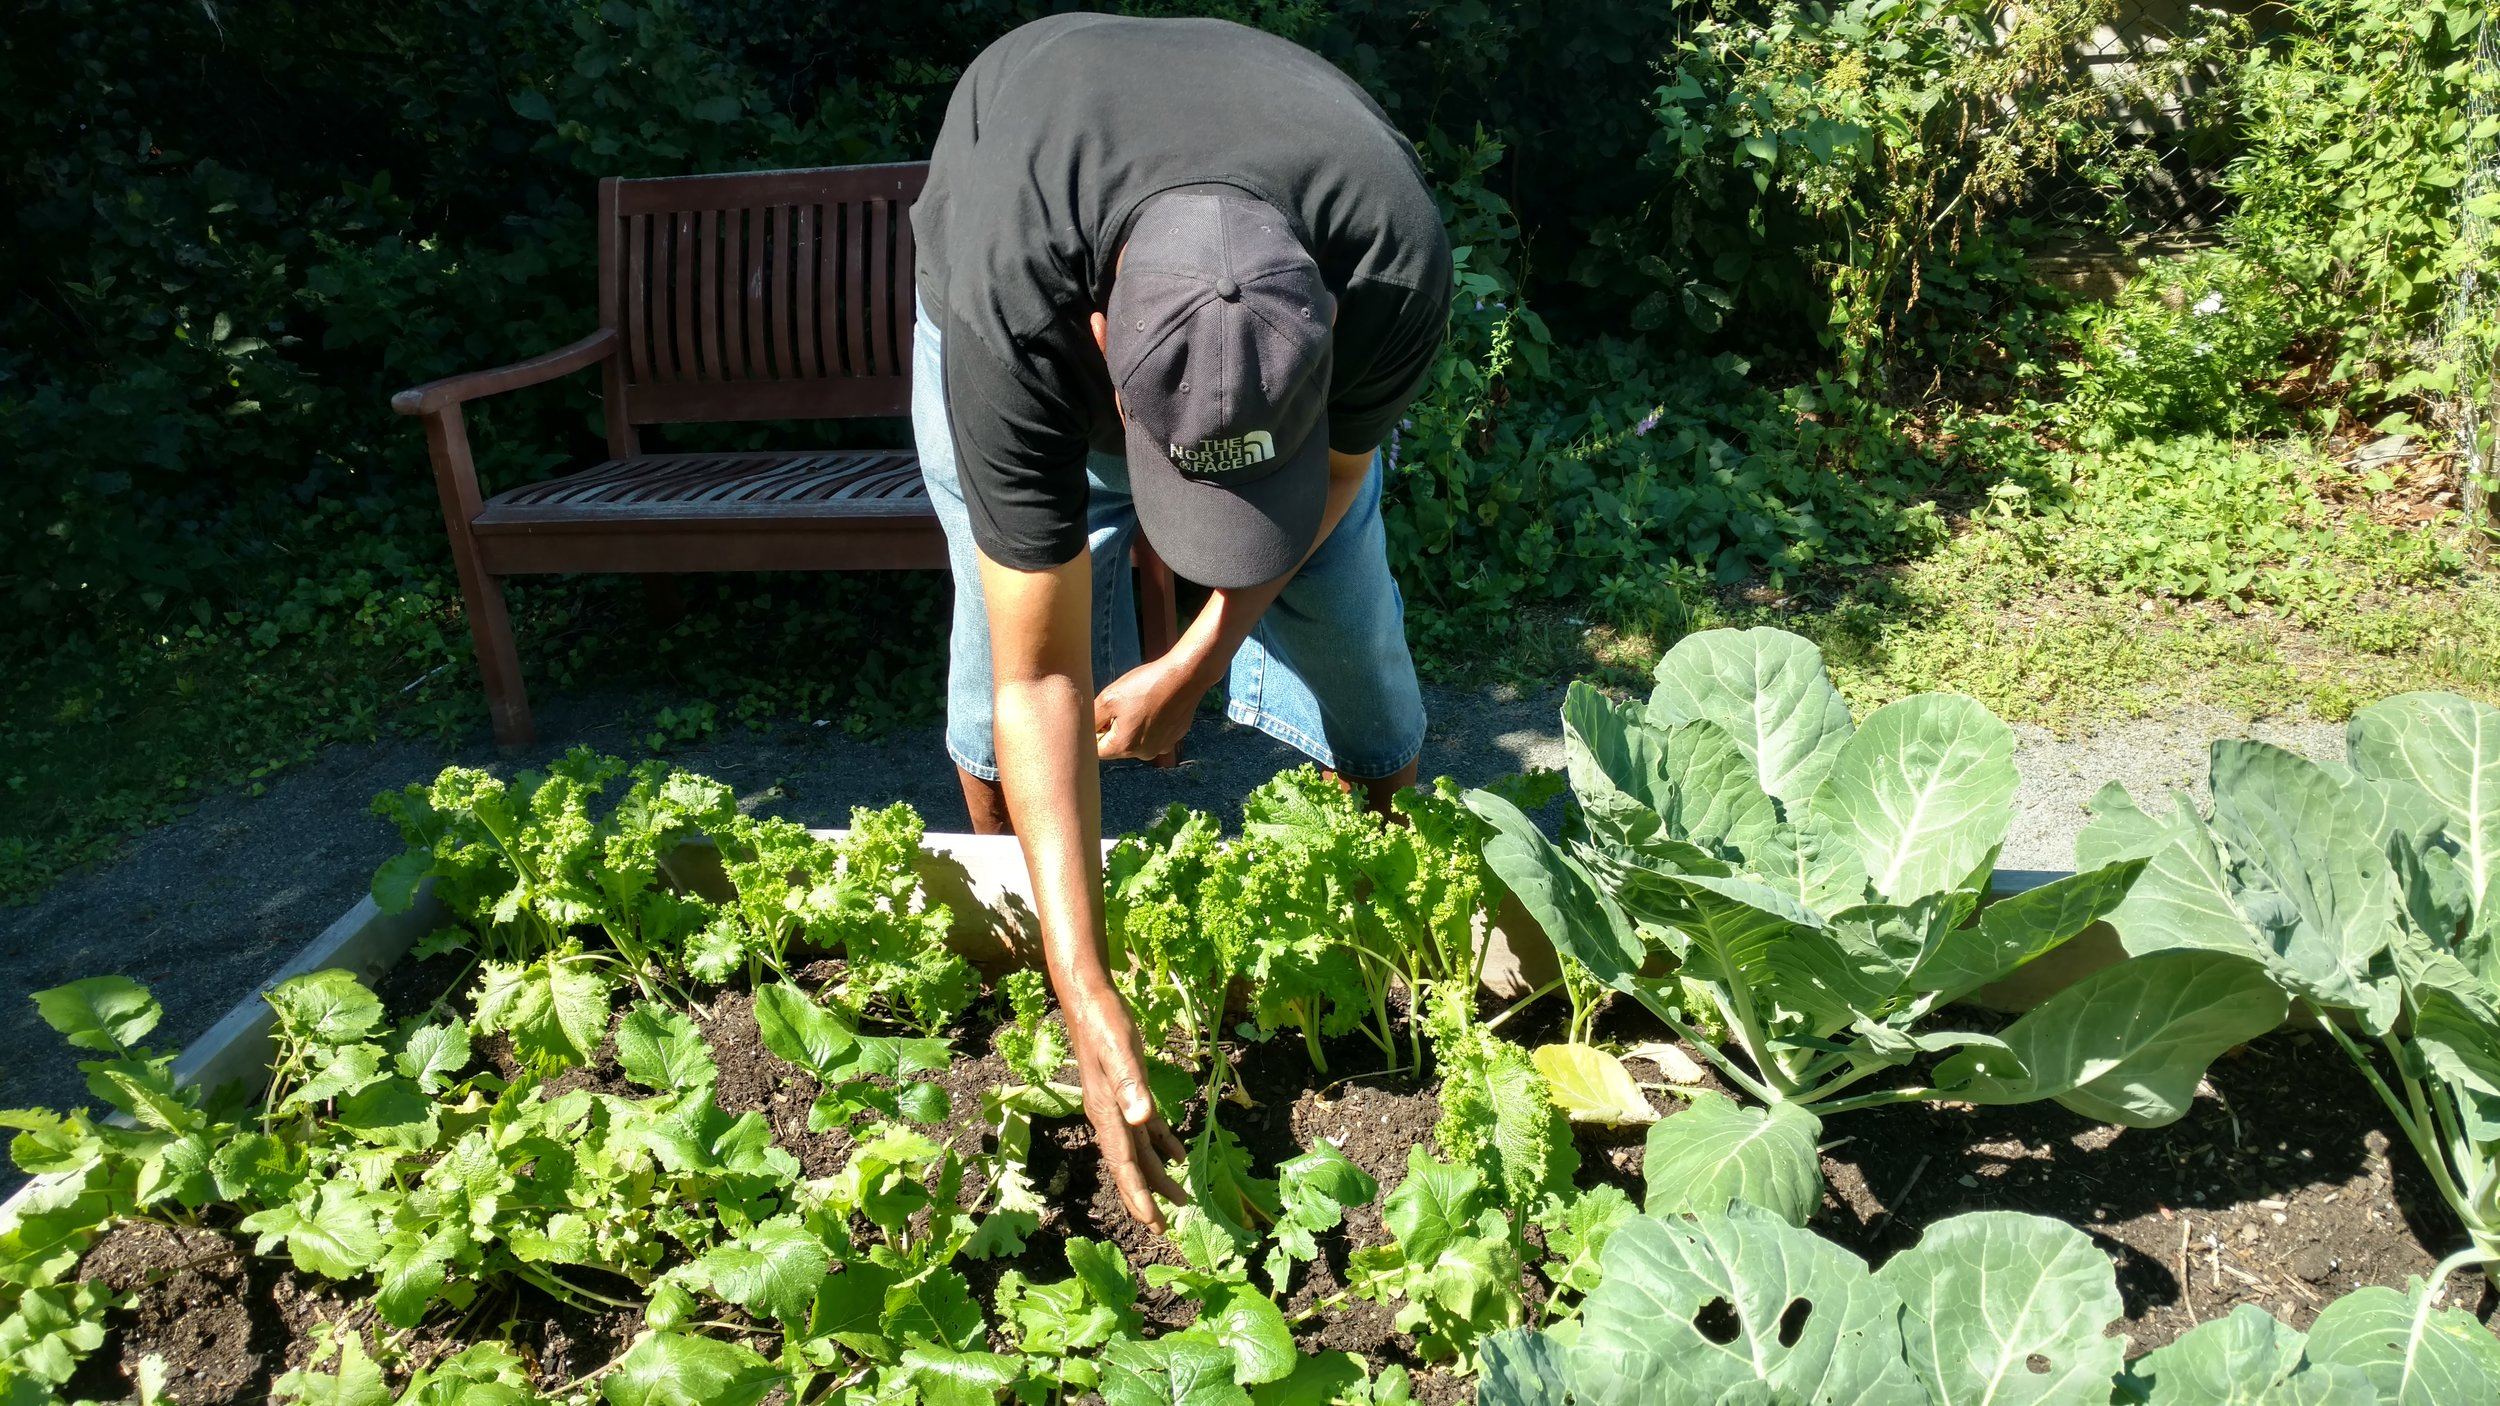 Harvesting Turnips at McPherson Garden